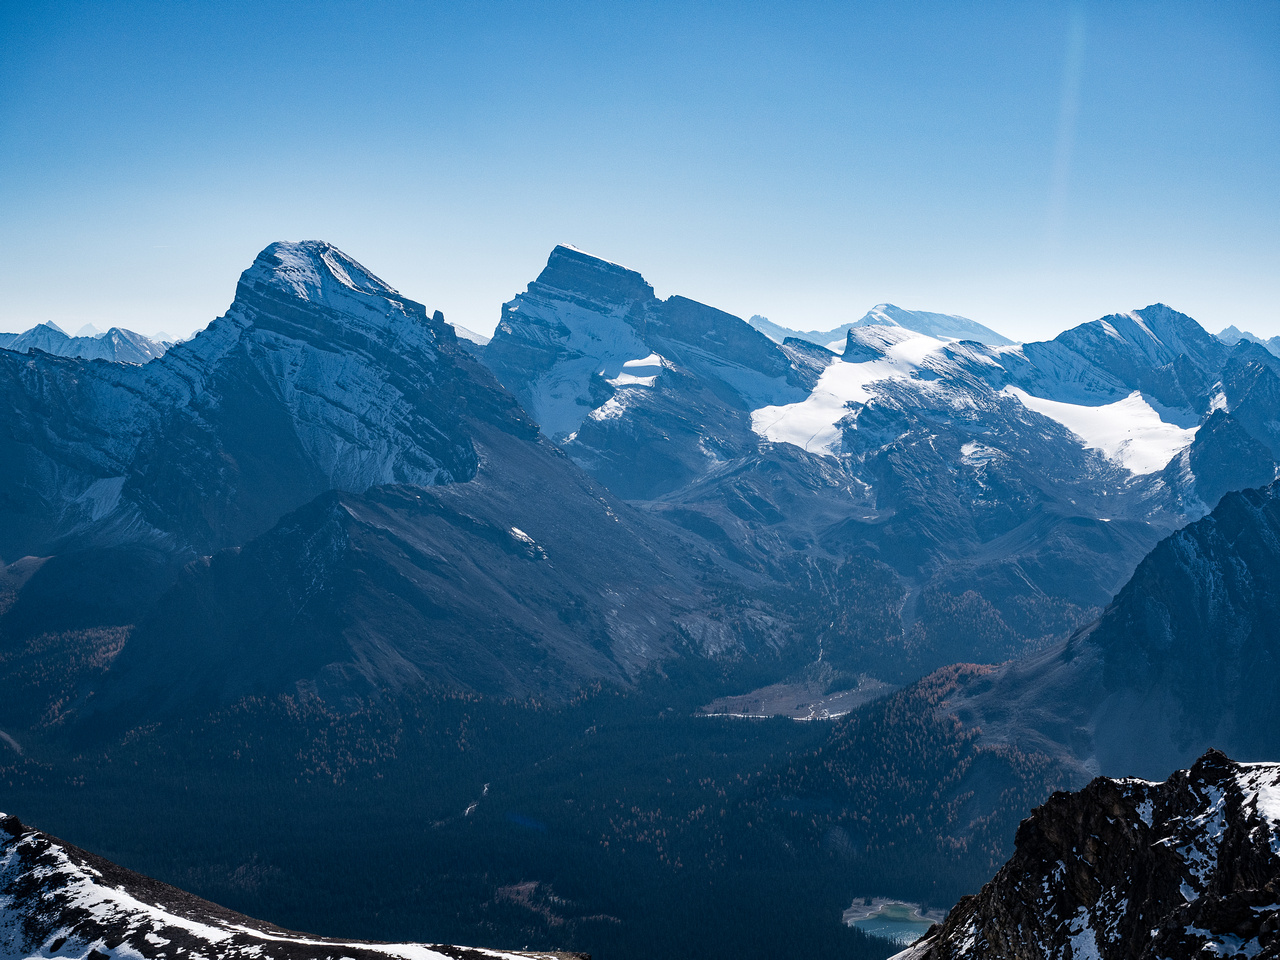 Douglas, St. Bride and Lychnis are impressive Skoki peaks that also see very few ascents.